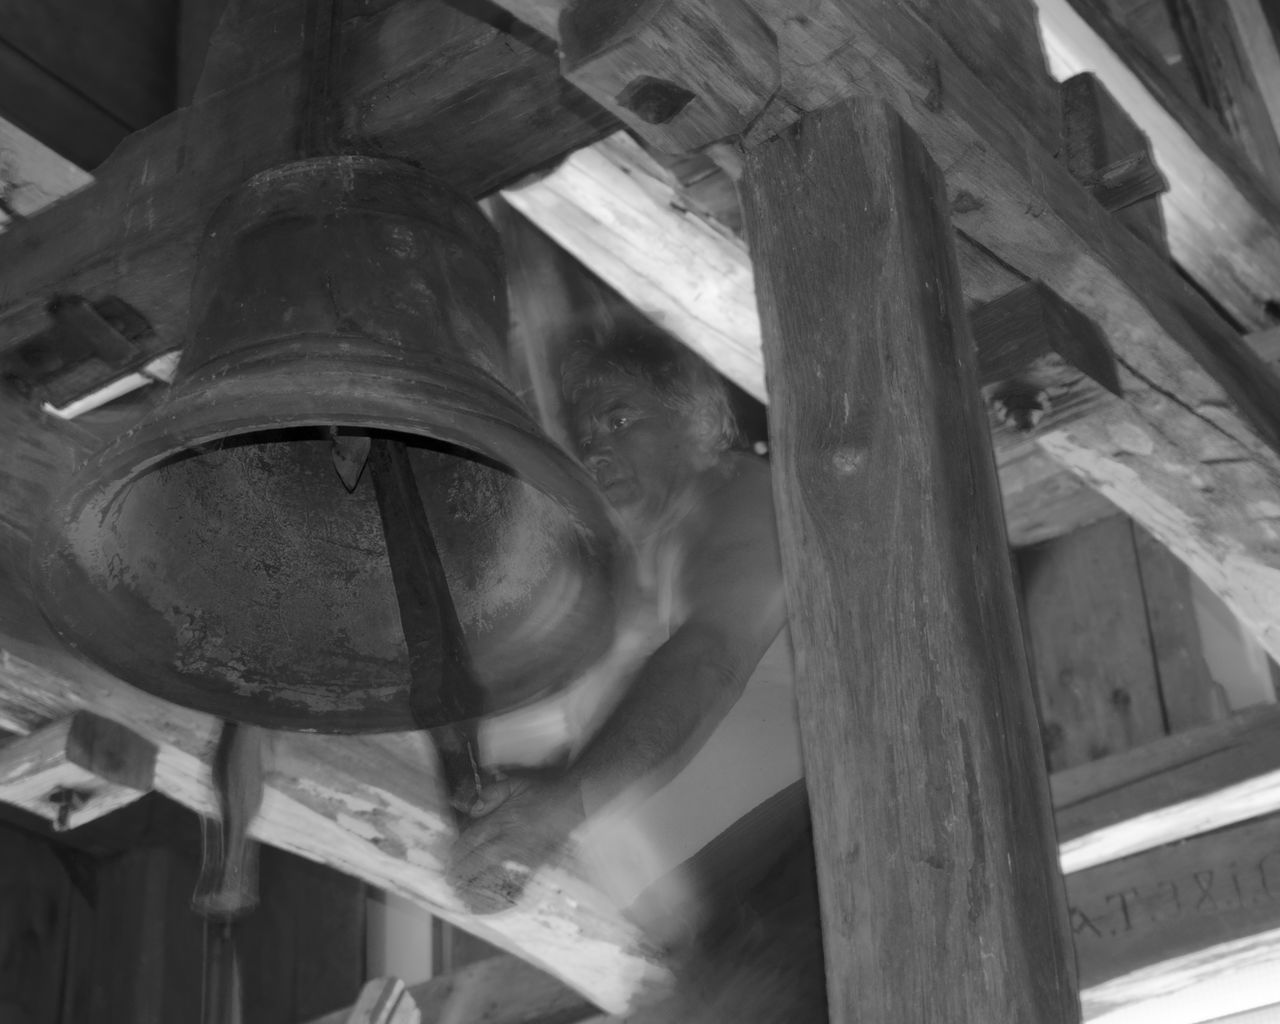 no people, wood - material, low angle view, architecture, metal, vertebrate, indoors, animal, old, animal themes, day, hanging, bell, close-up, built structure, one animal, focus on foreground, history, animal wildlife, ceiling, roof beam